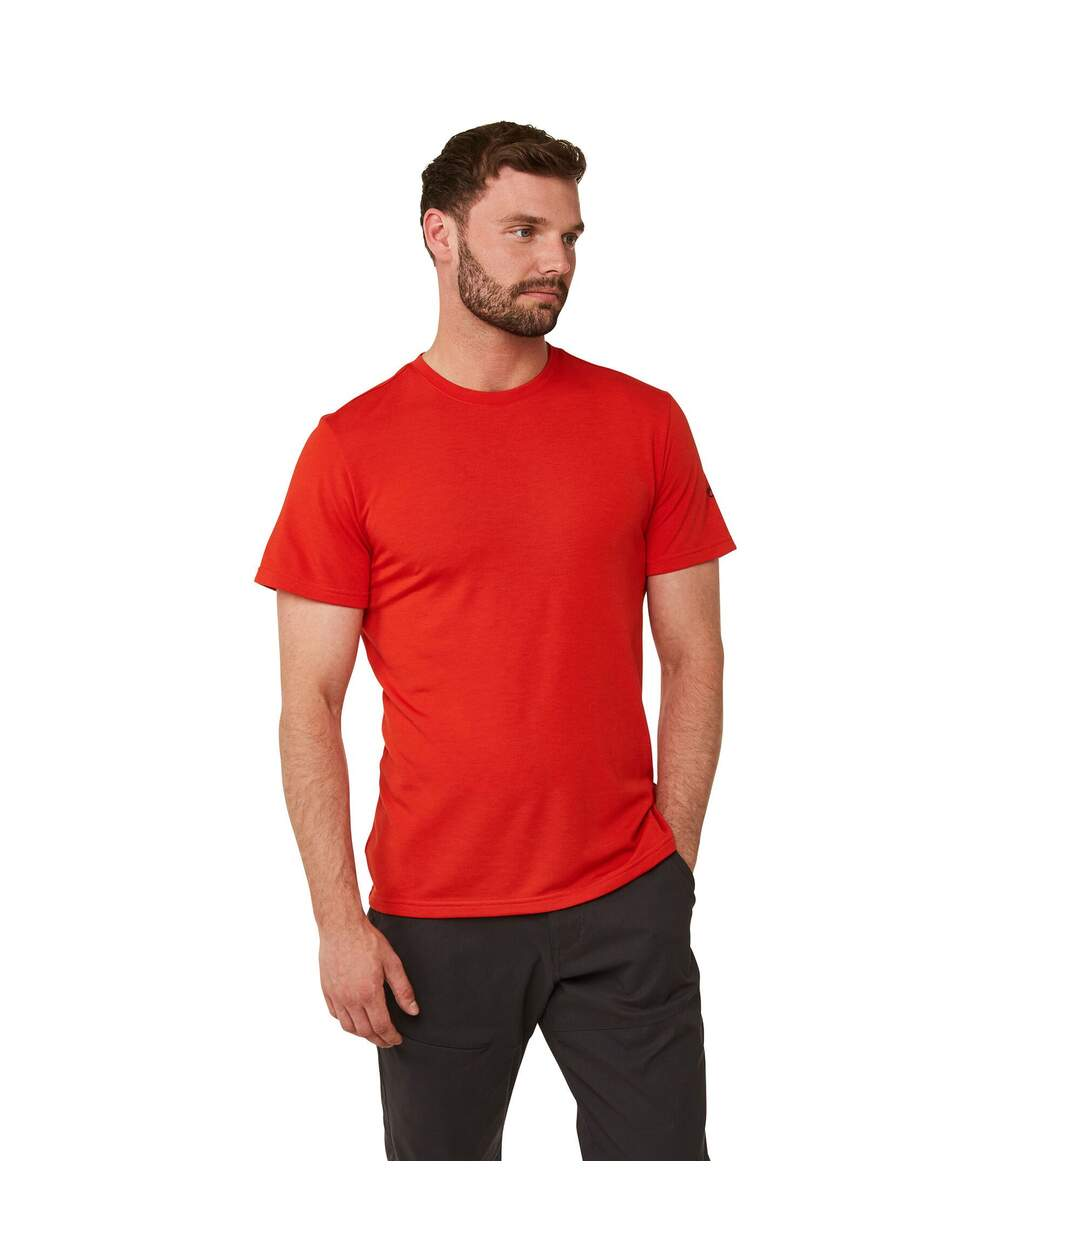 Craghoppers Mens First Layer Short Sleeve T-shirt (Aster Red) - UTCG985